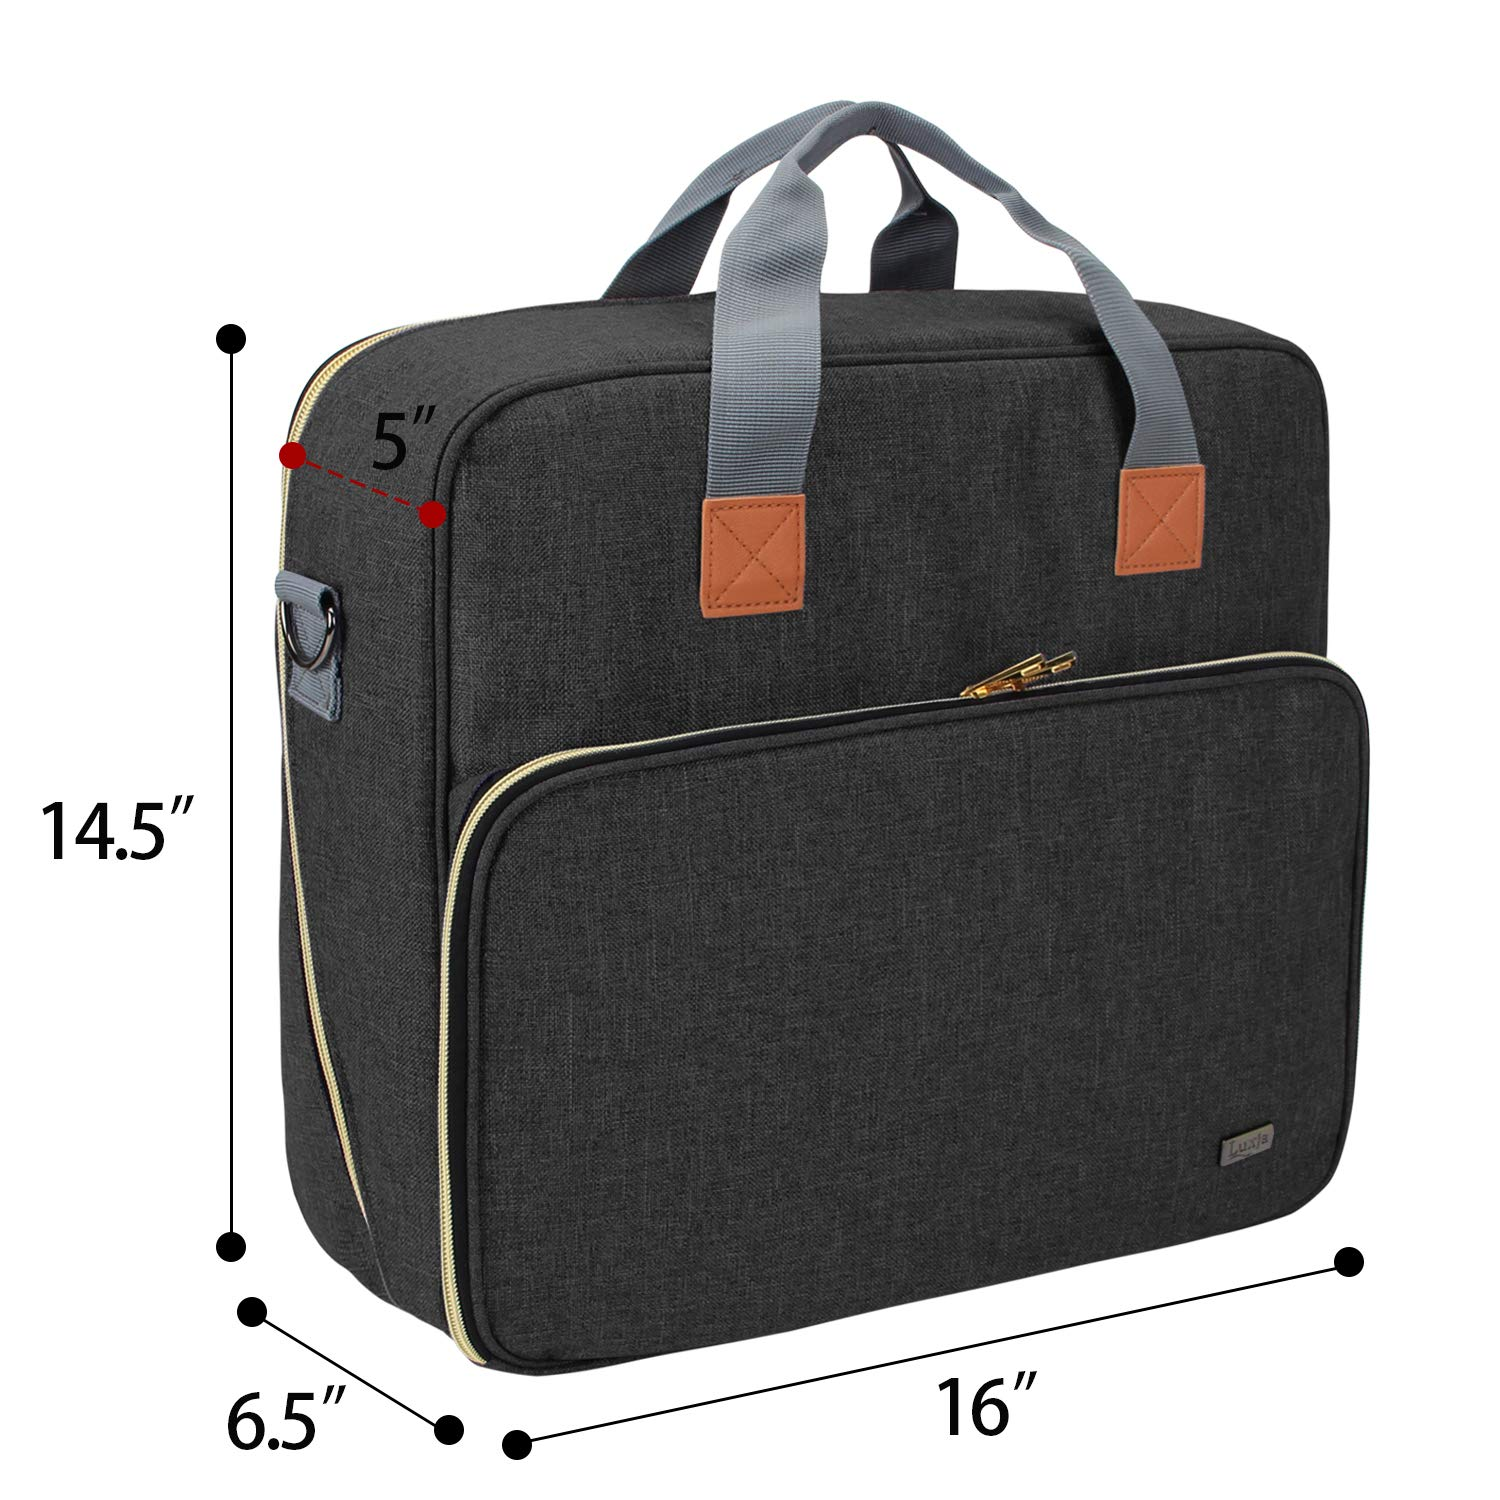 Storage Case Compatible with Cricut Easy Press 2 and Accessories 12 inches x 10 inches Luxja Carrying Bag Compatible with Cricut Easy Press 2 Black Bag Only